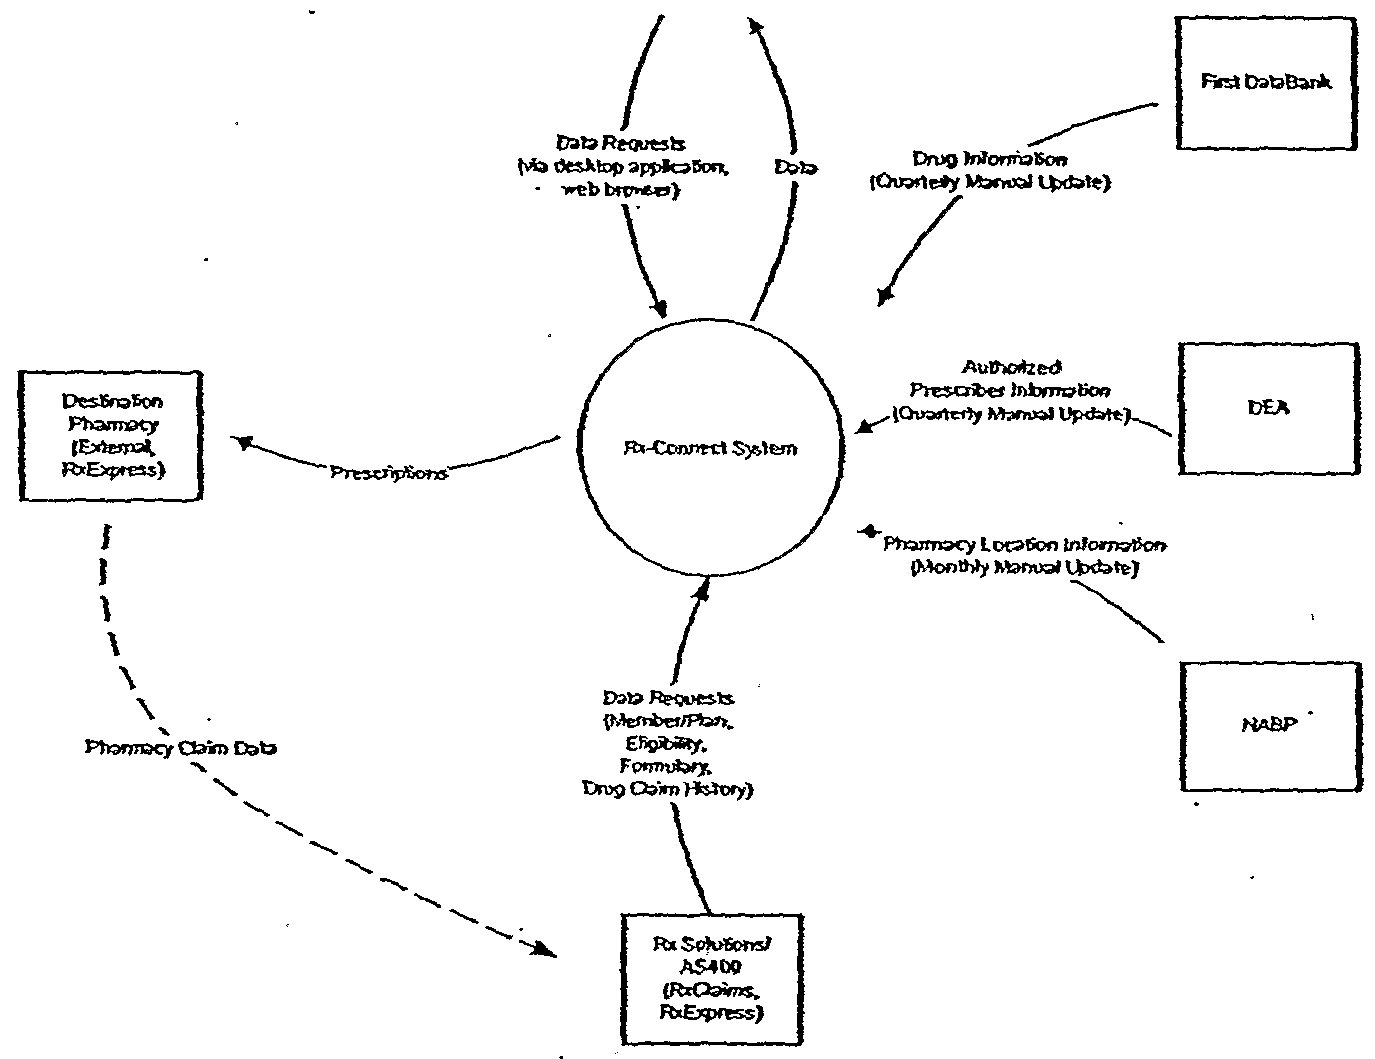 Wo2003017166a1 medical service and prescription management context diagram figure imgf0001090001 systems requirements pooptronica